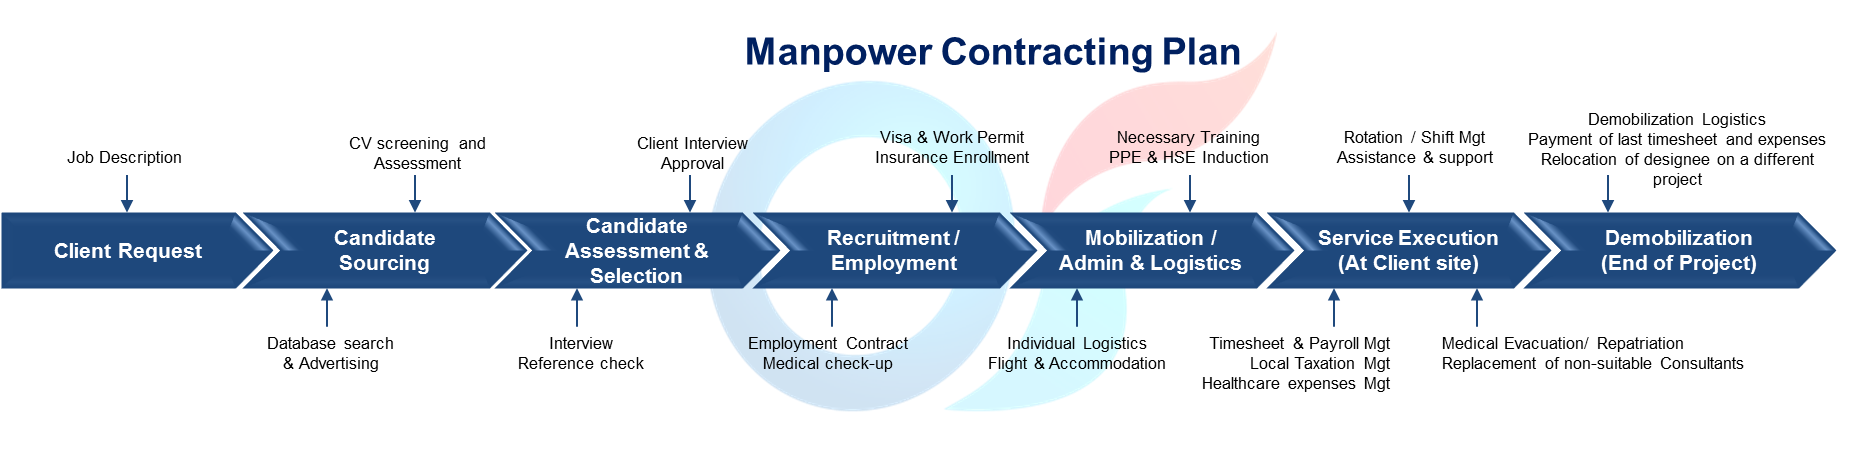 Manpower contracting